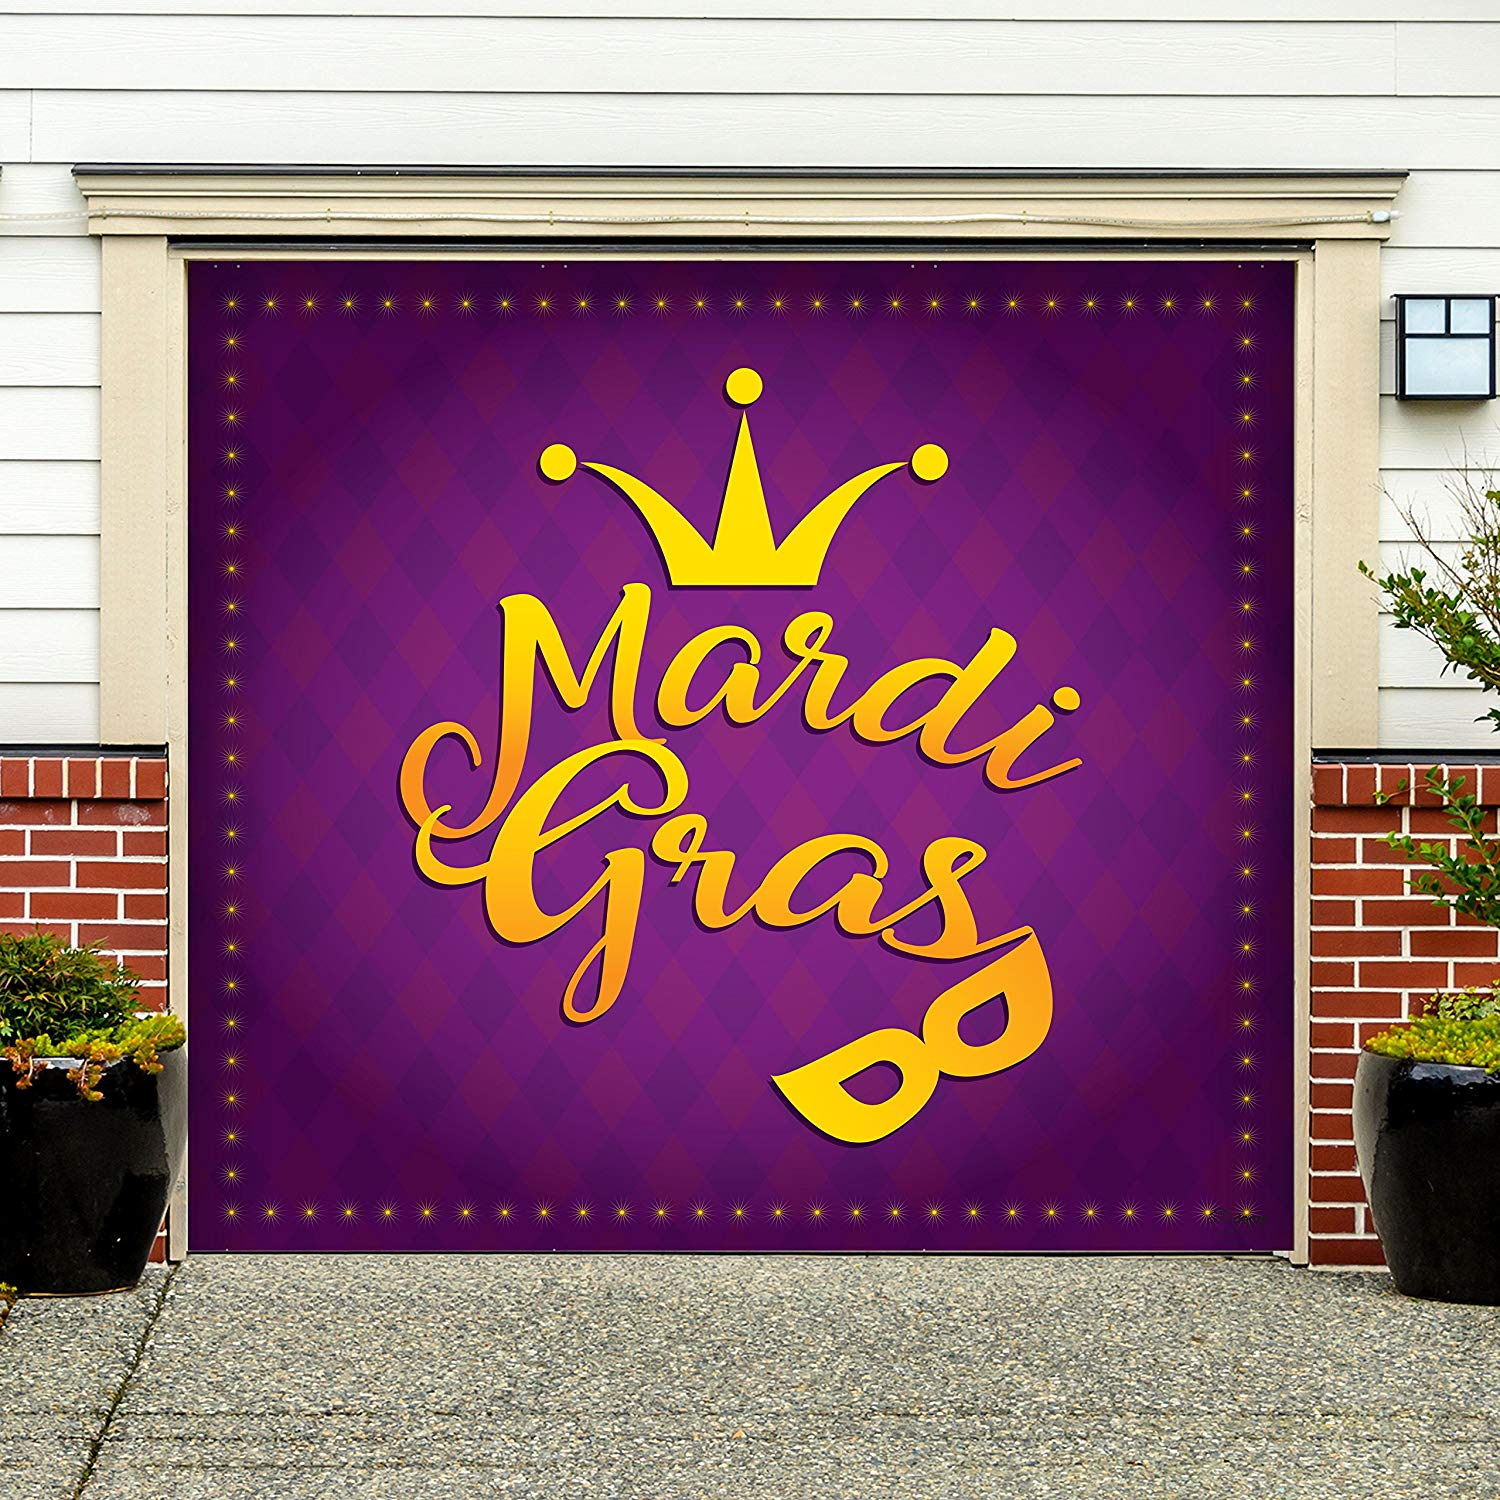 Victory Corps Outdoor Mardi Gras Decorations Garage Door Banner Cover Mural Décoration 7'x8' - Mardi Gras Crown and Mask - The Original Mardi Gras Supplies Holiday Garage Door Banner Decor